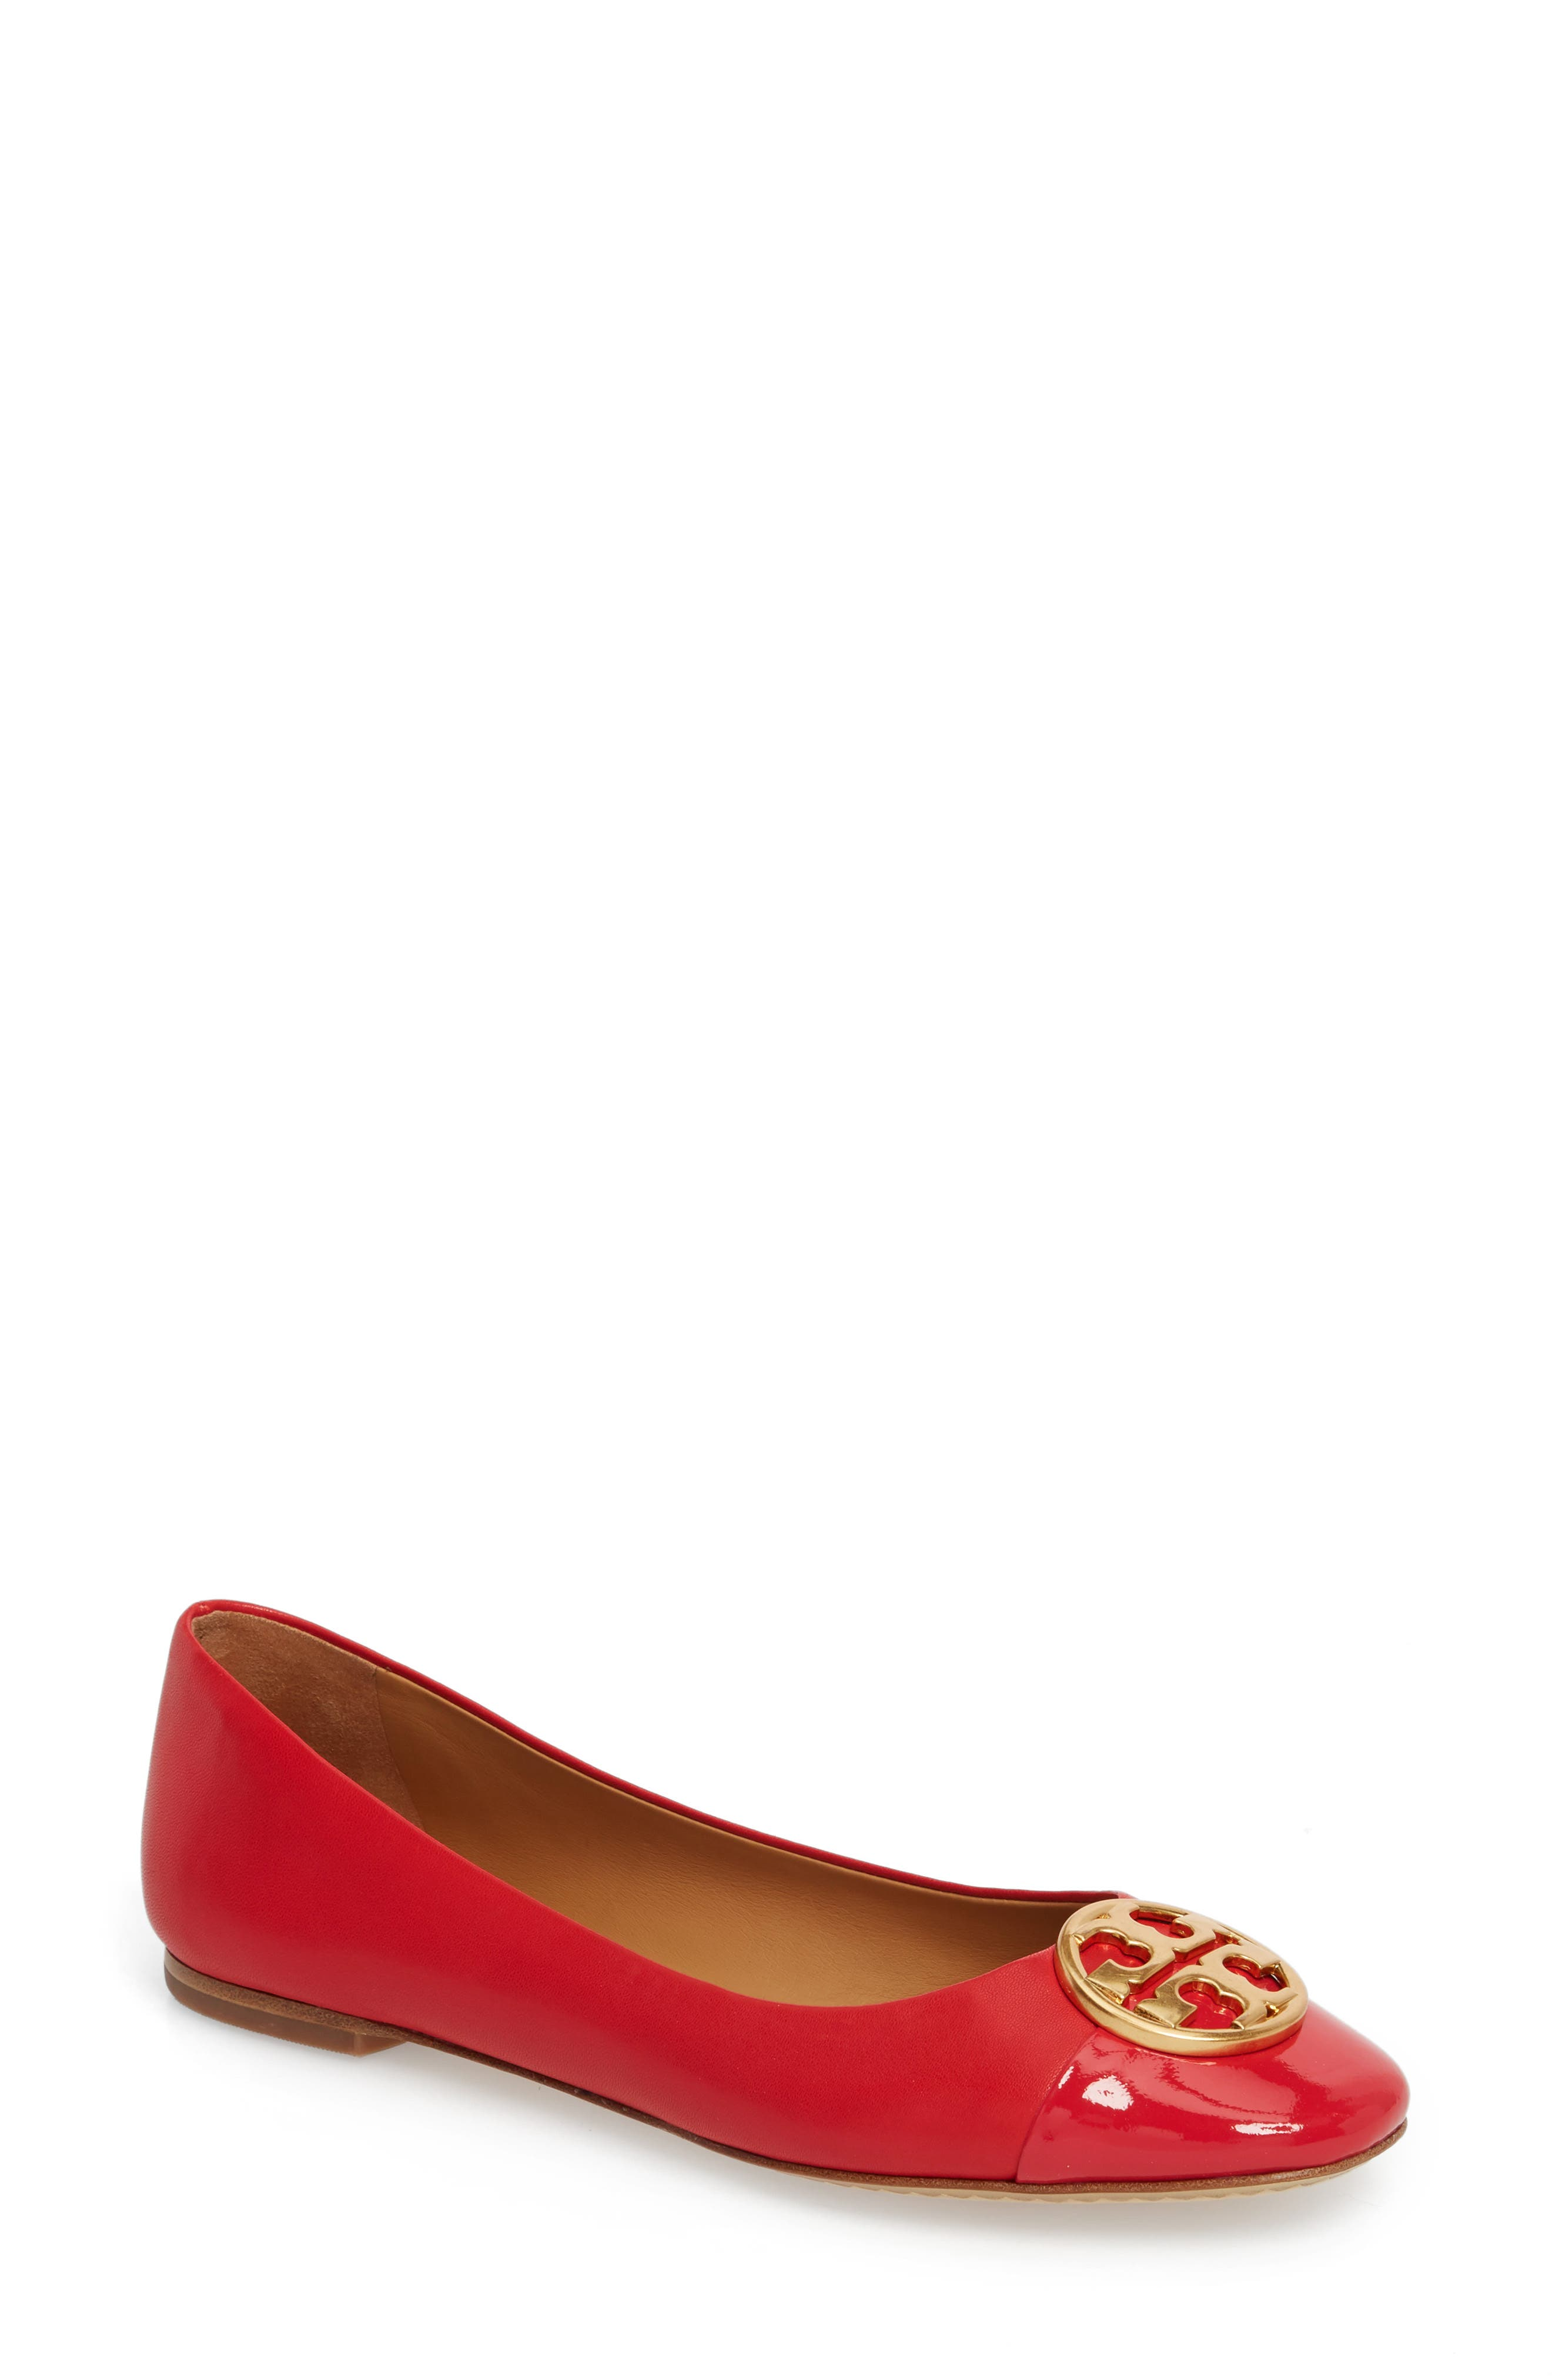 Chelsea Cap Toe Ballet Flat,                             Main thumbnail 1, color,                             BRILLIANT RED